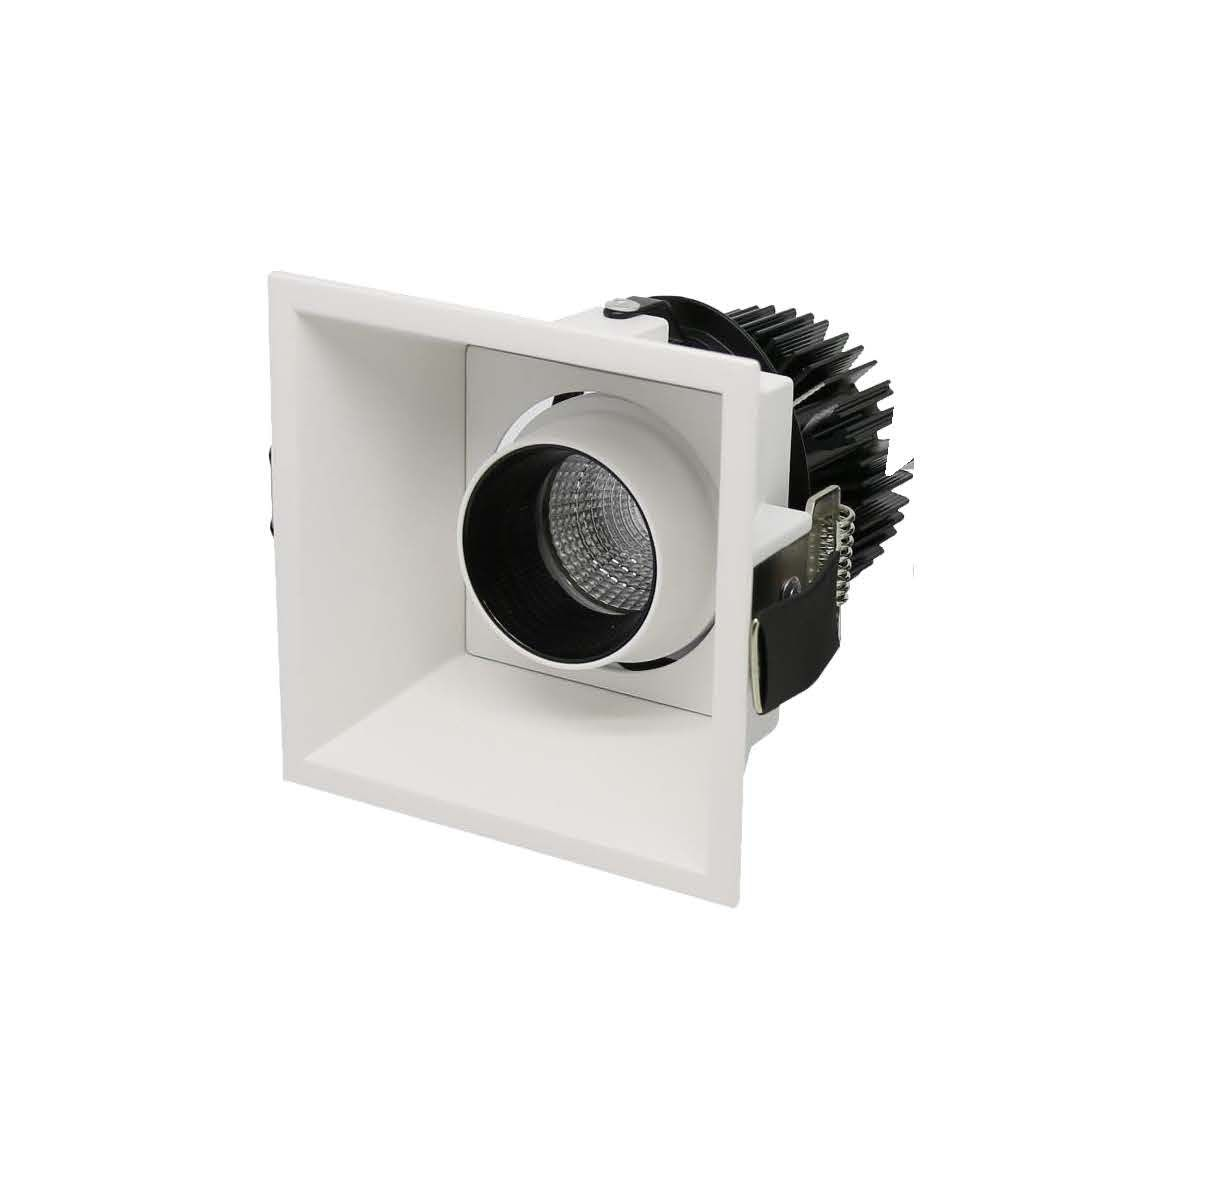 MIA recessed adjustable downlight